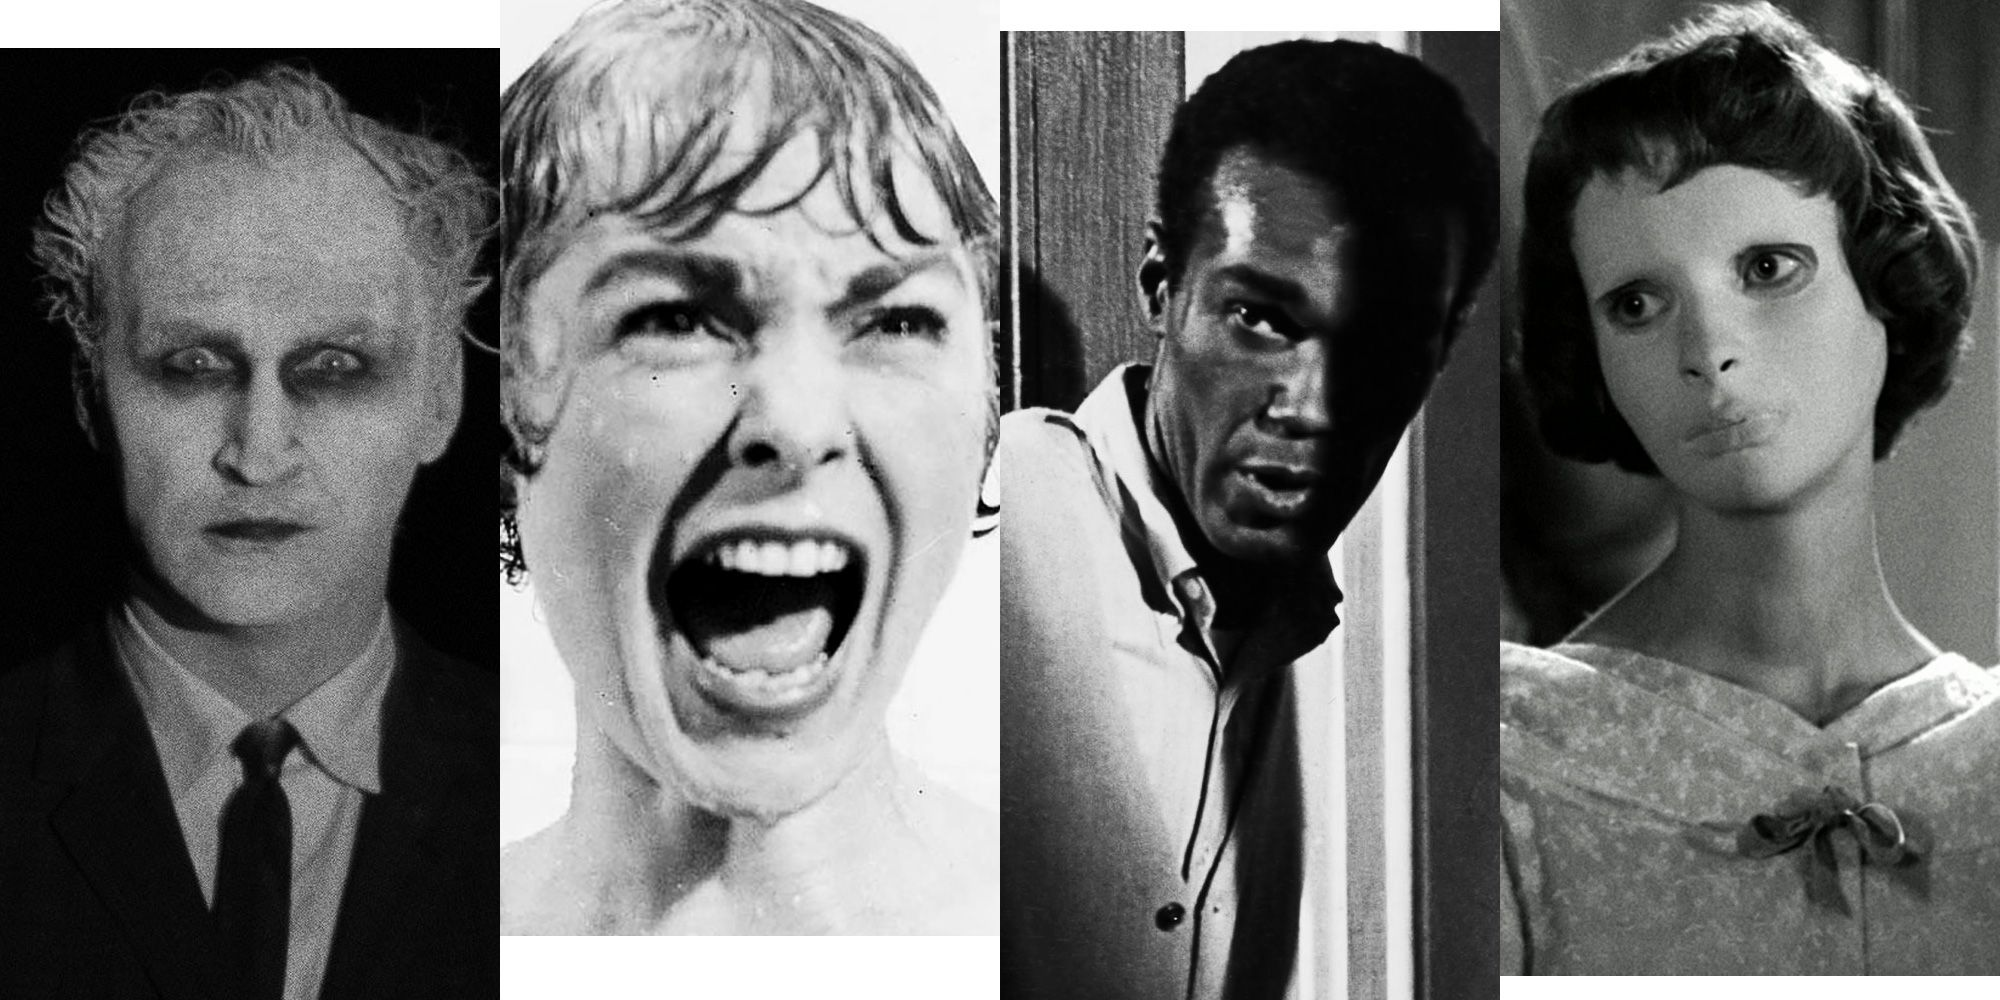 The 10 Best Black and White Horror Movies Ever Made